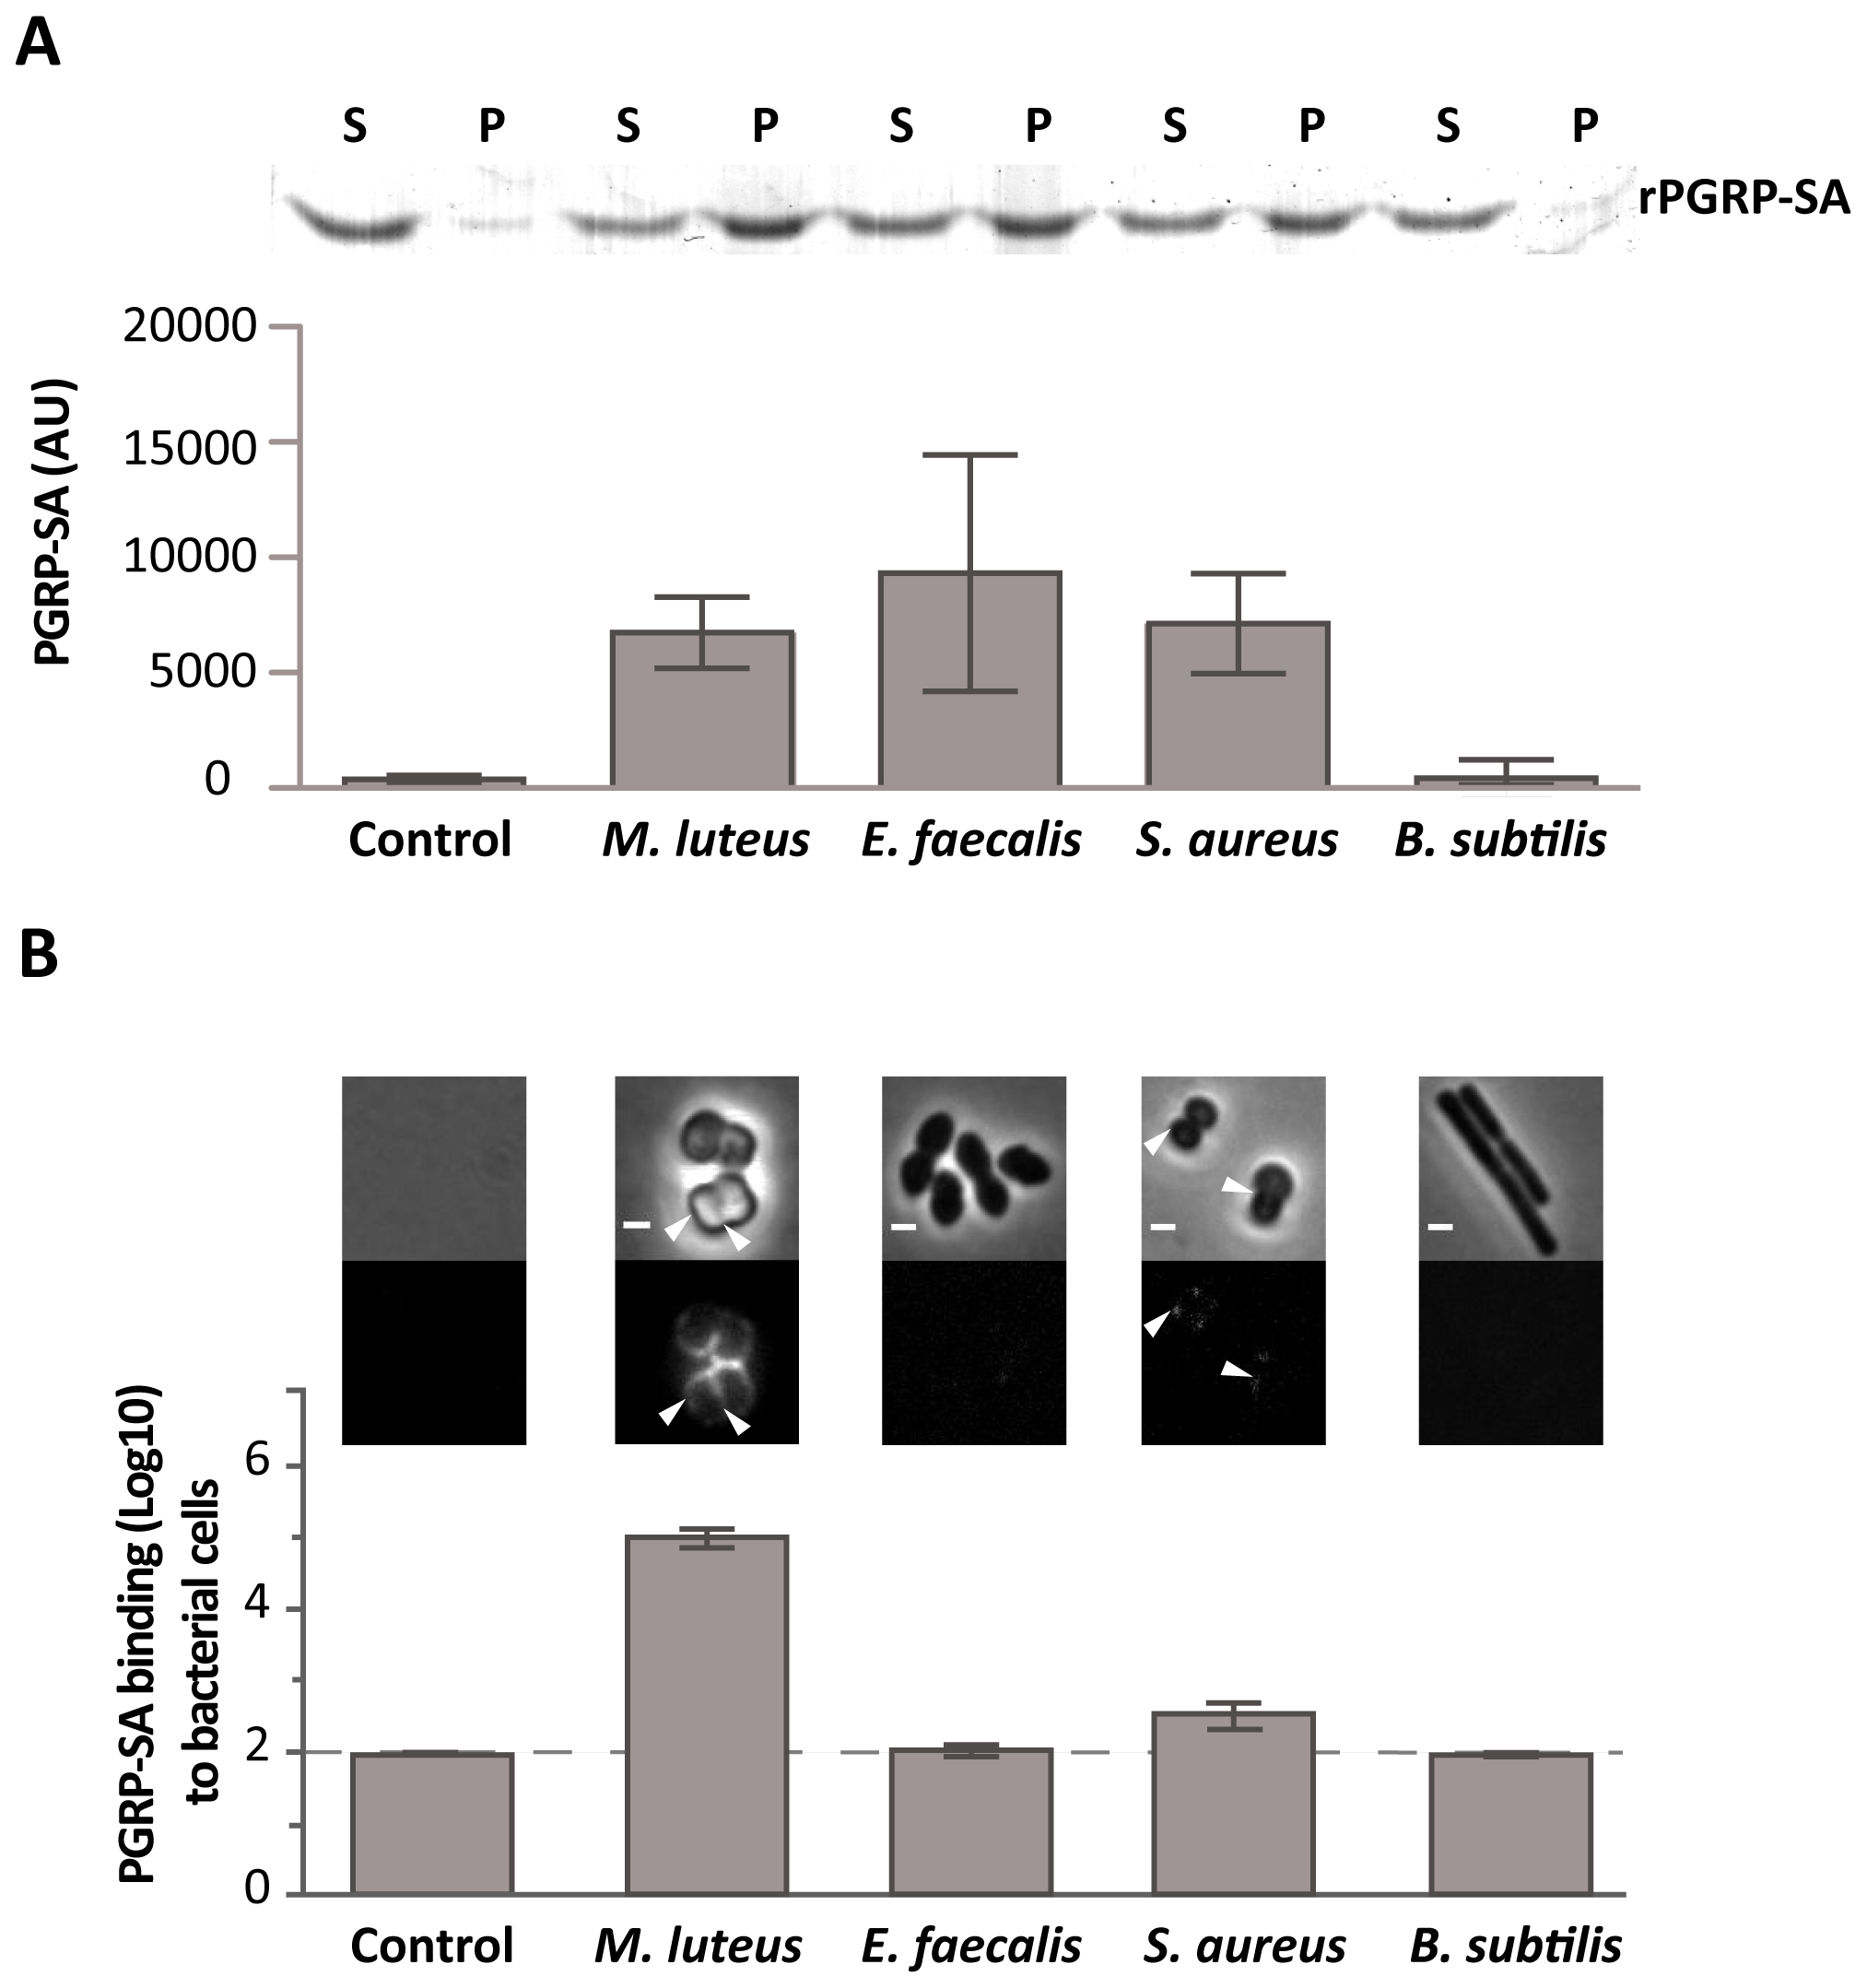 Differential binding of PGRP-SA to the surface of live Gram-positive bacteria.